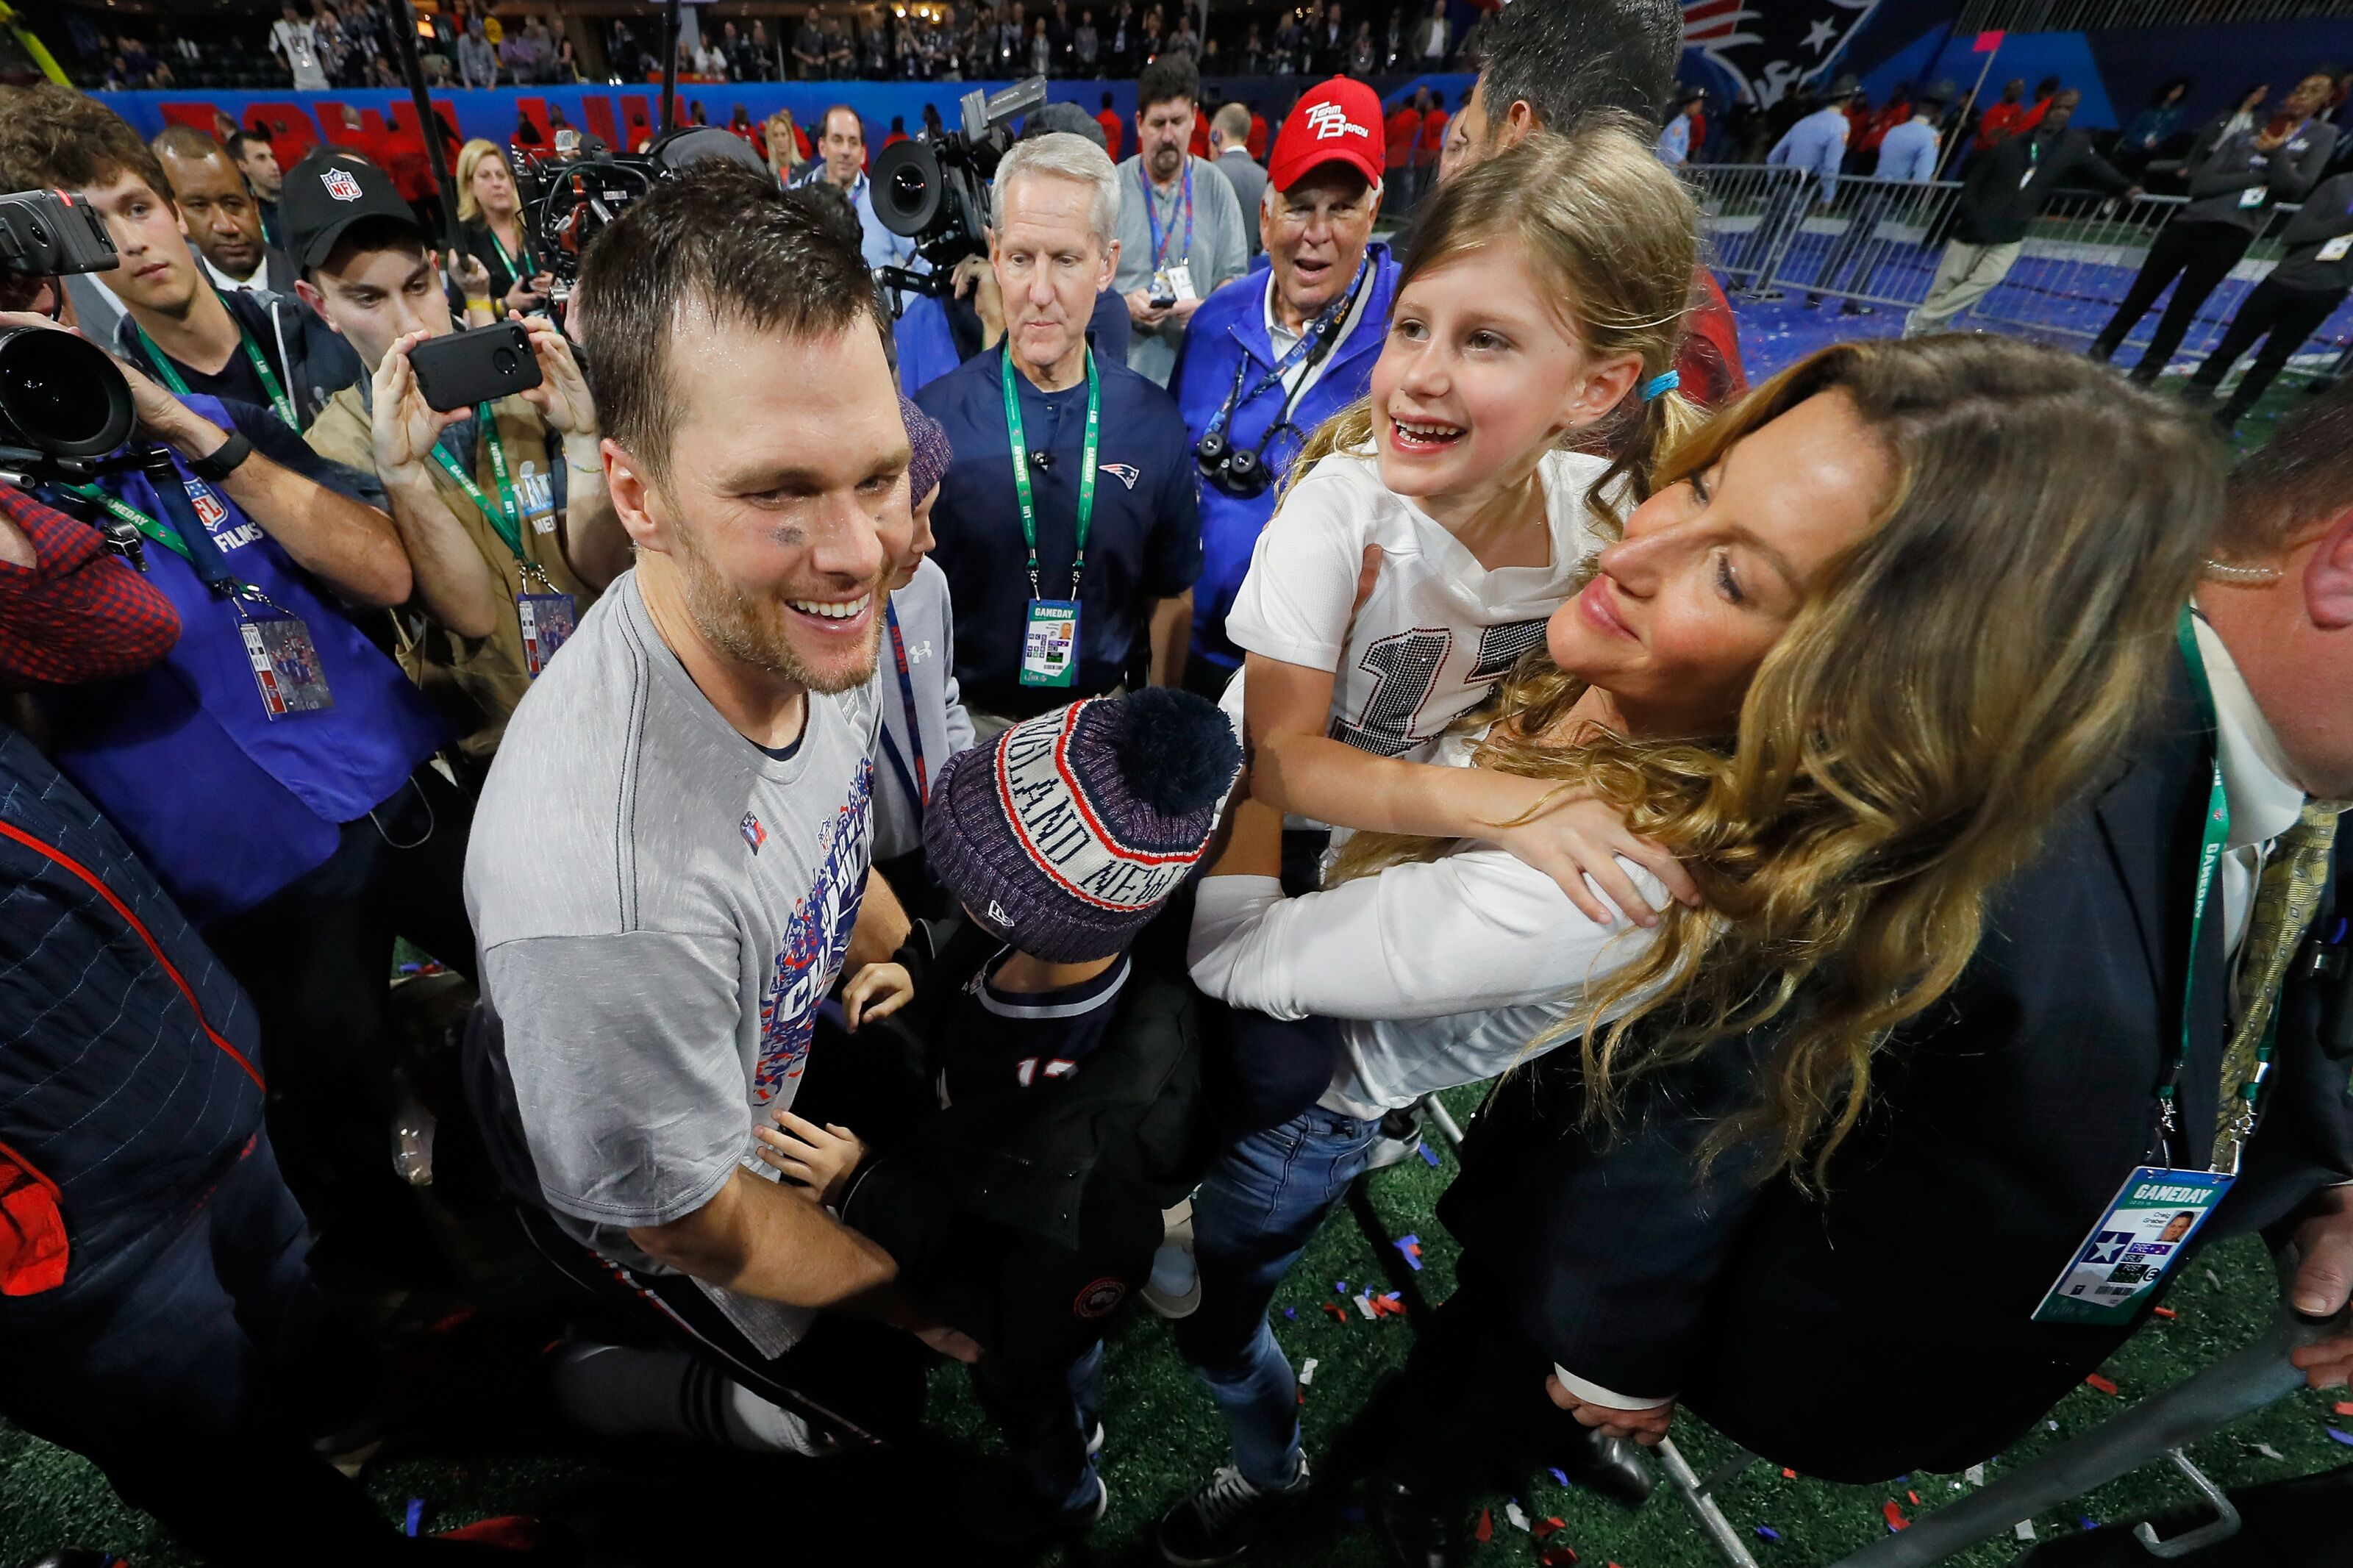 New England Patriots: The internet is mad at Tom Brady again